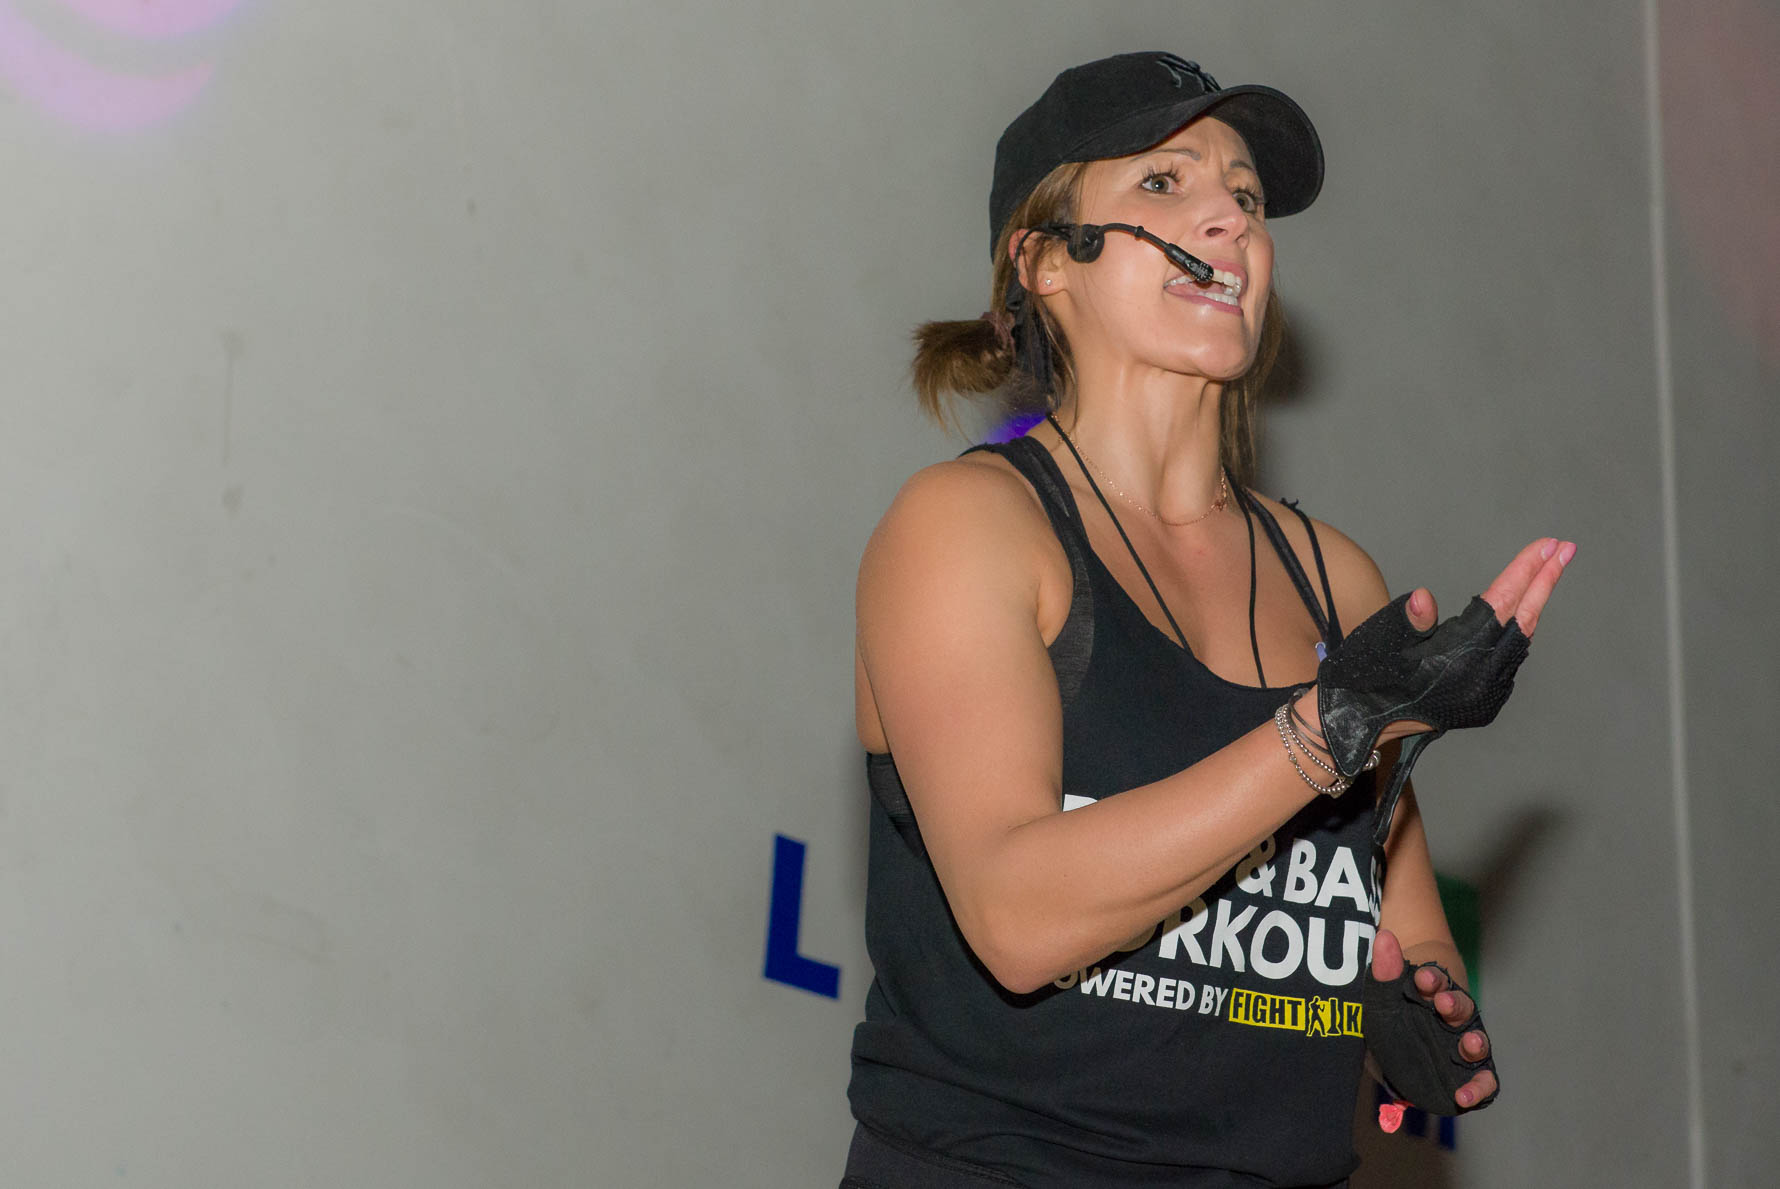 PR photography - instructor leading exercise class